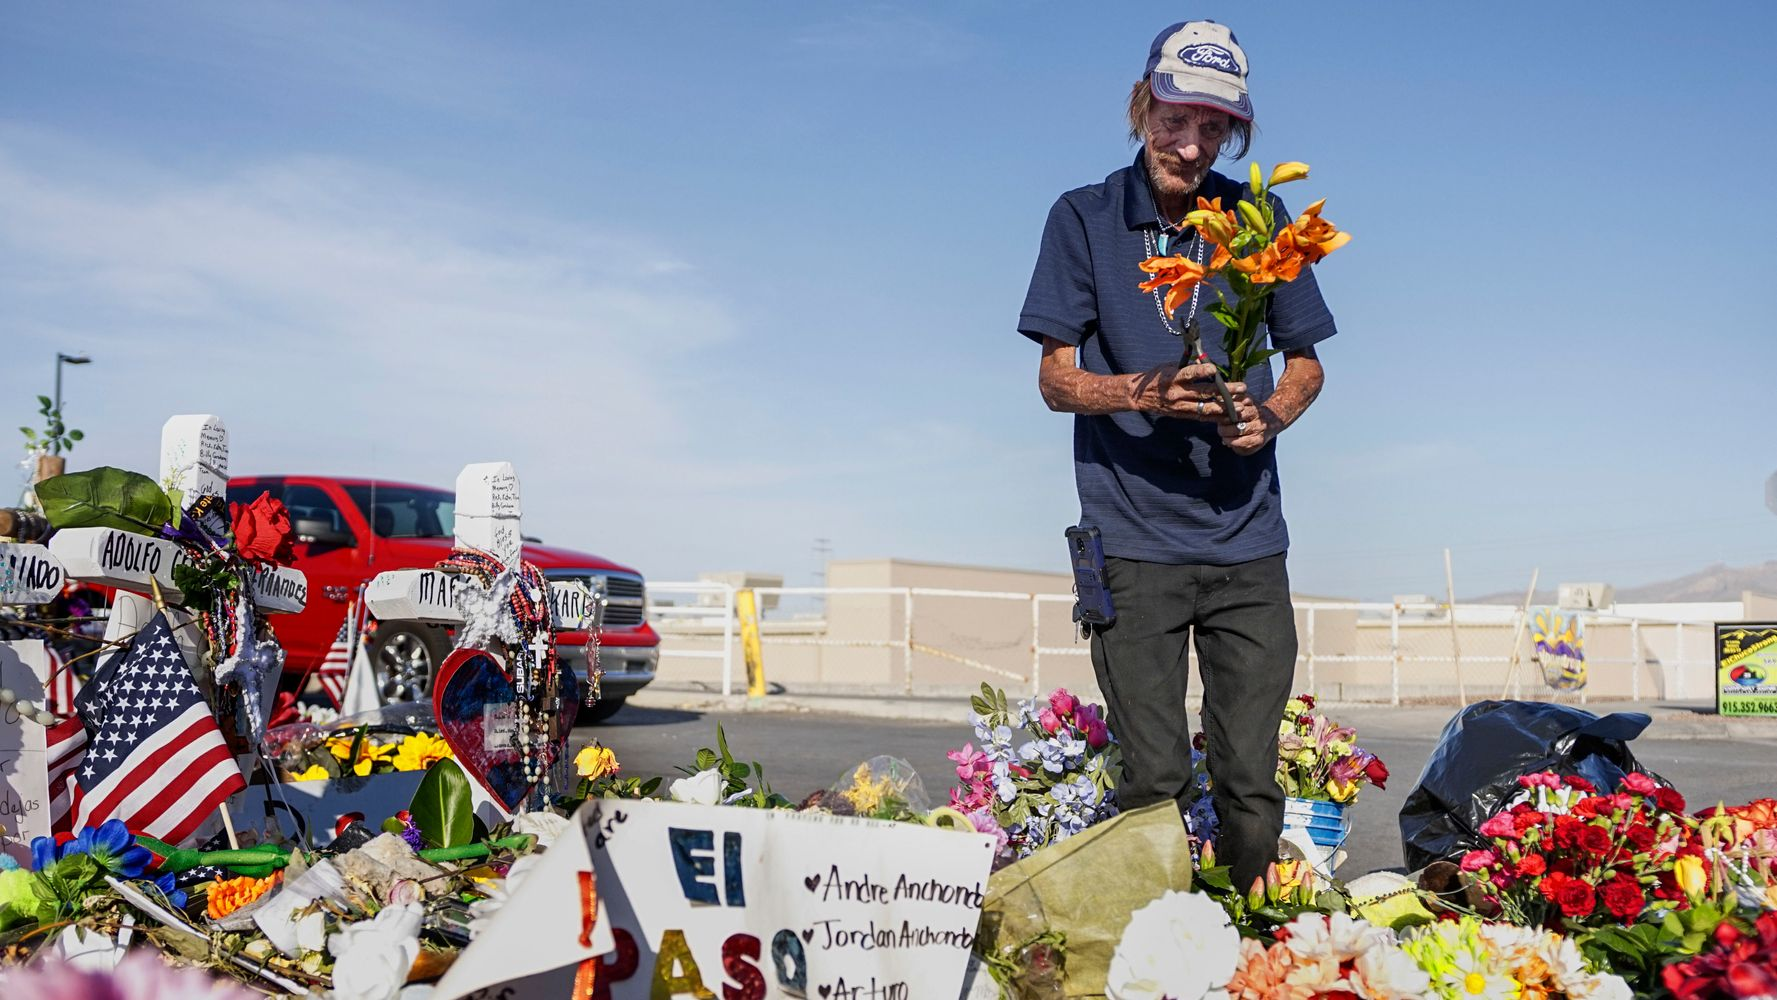 Westlake Legal Group 5e0765ff250000141198f48b Mass Killings In U.S. Hit Record High In 2019, Most Were Mass Shootings